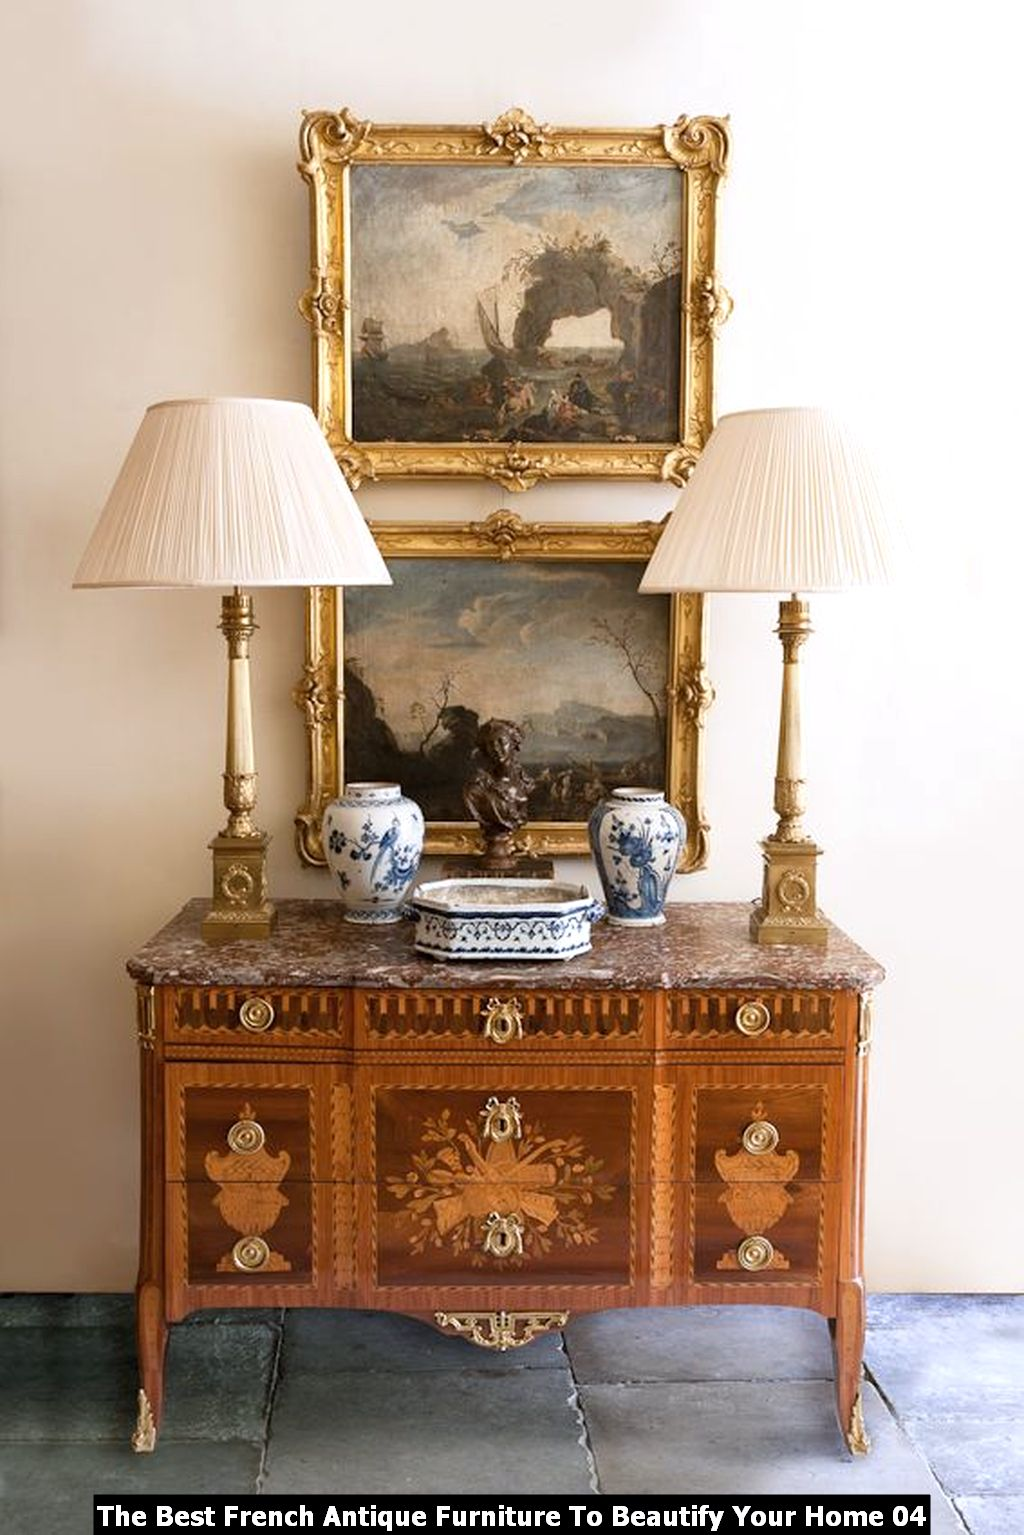 The Best French Antique Furniture To Beautify Your Home 04